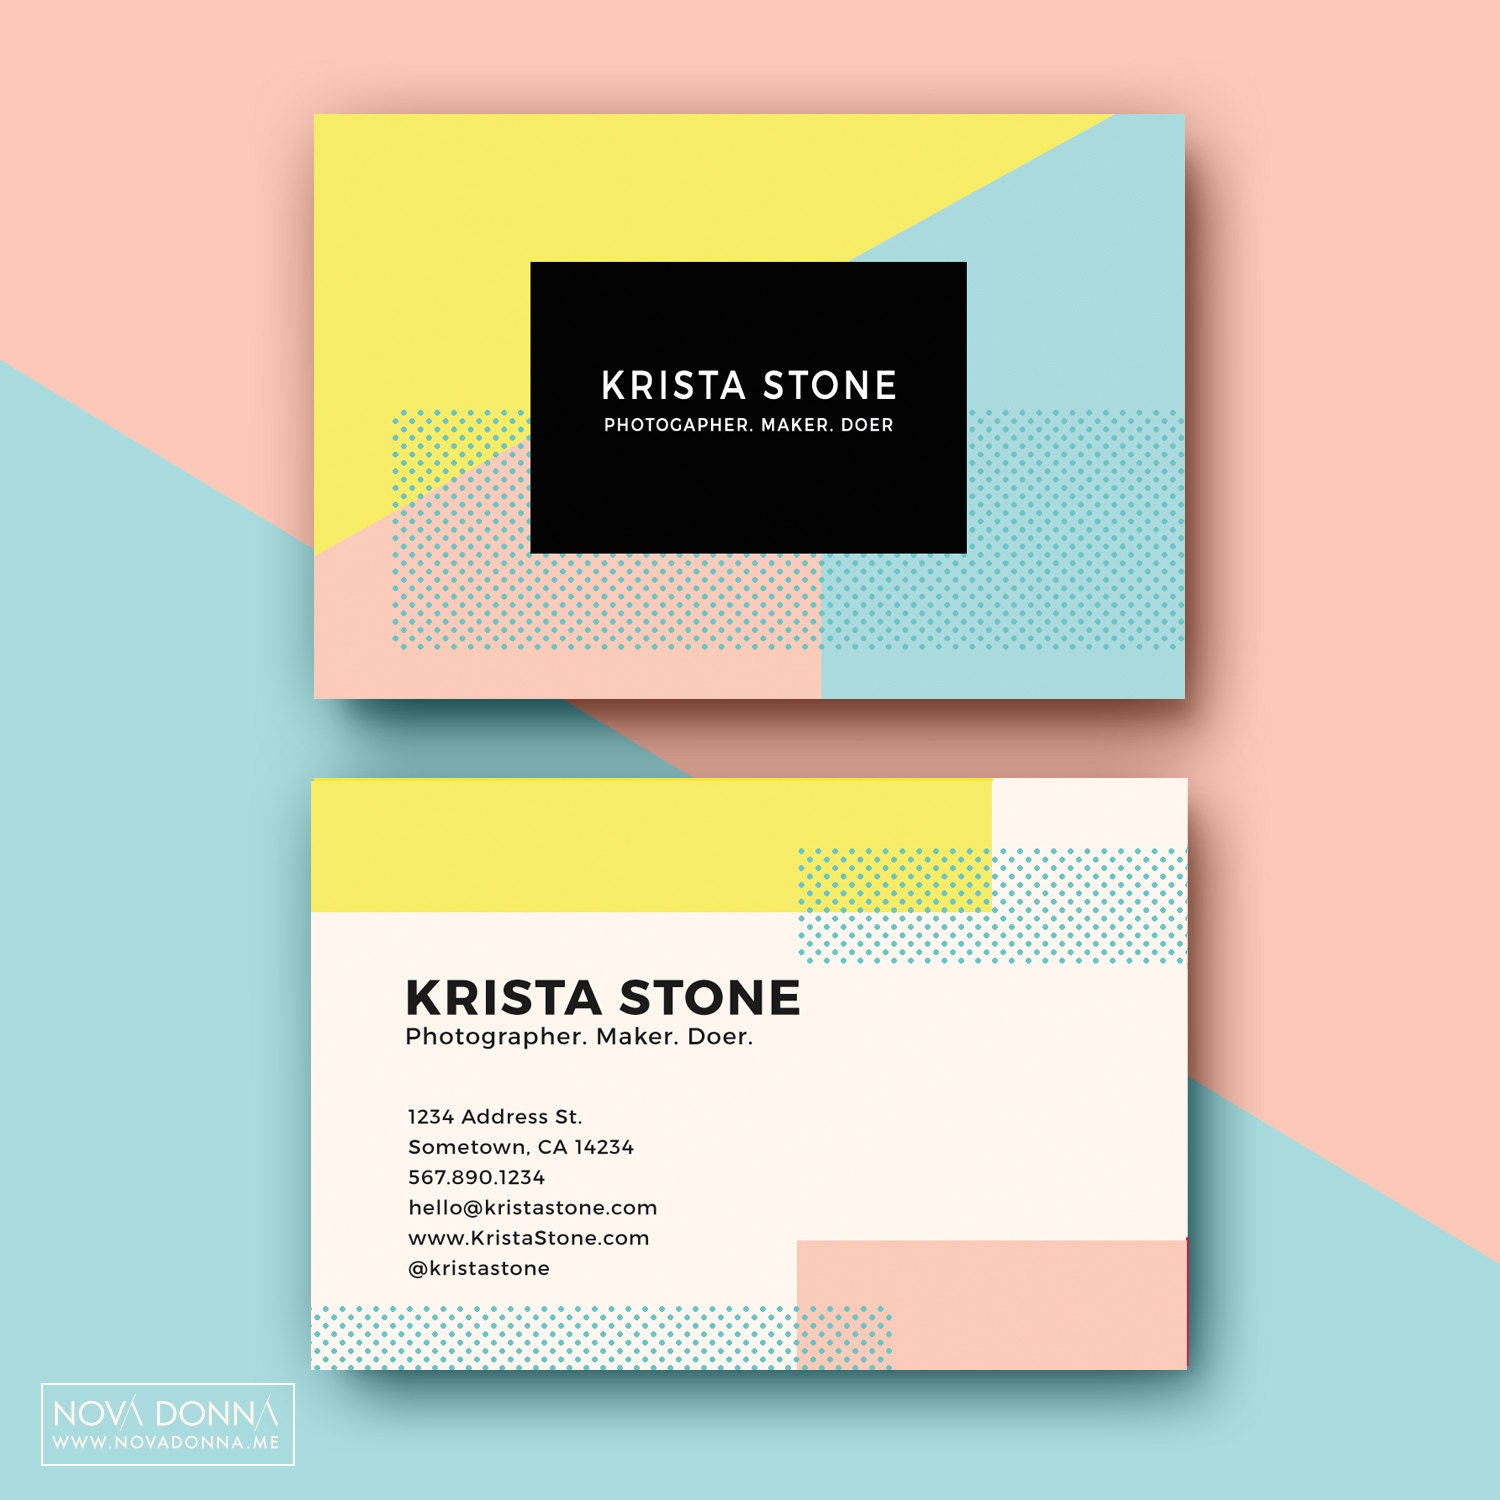 Business Card Layout Template: Business Card Templates Design Customizable Adobe Photoshop